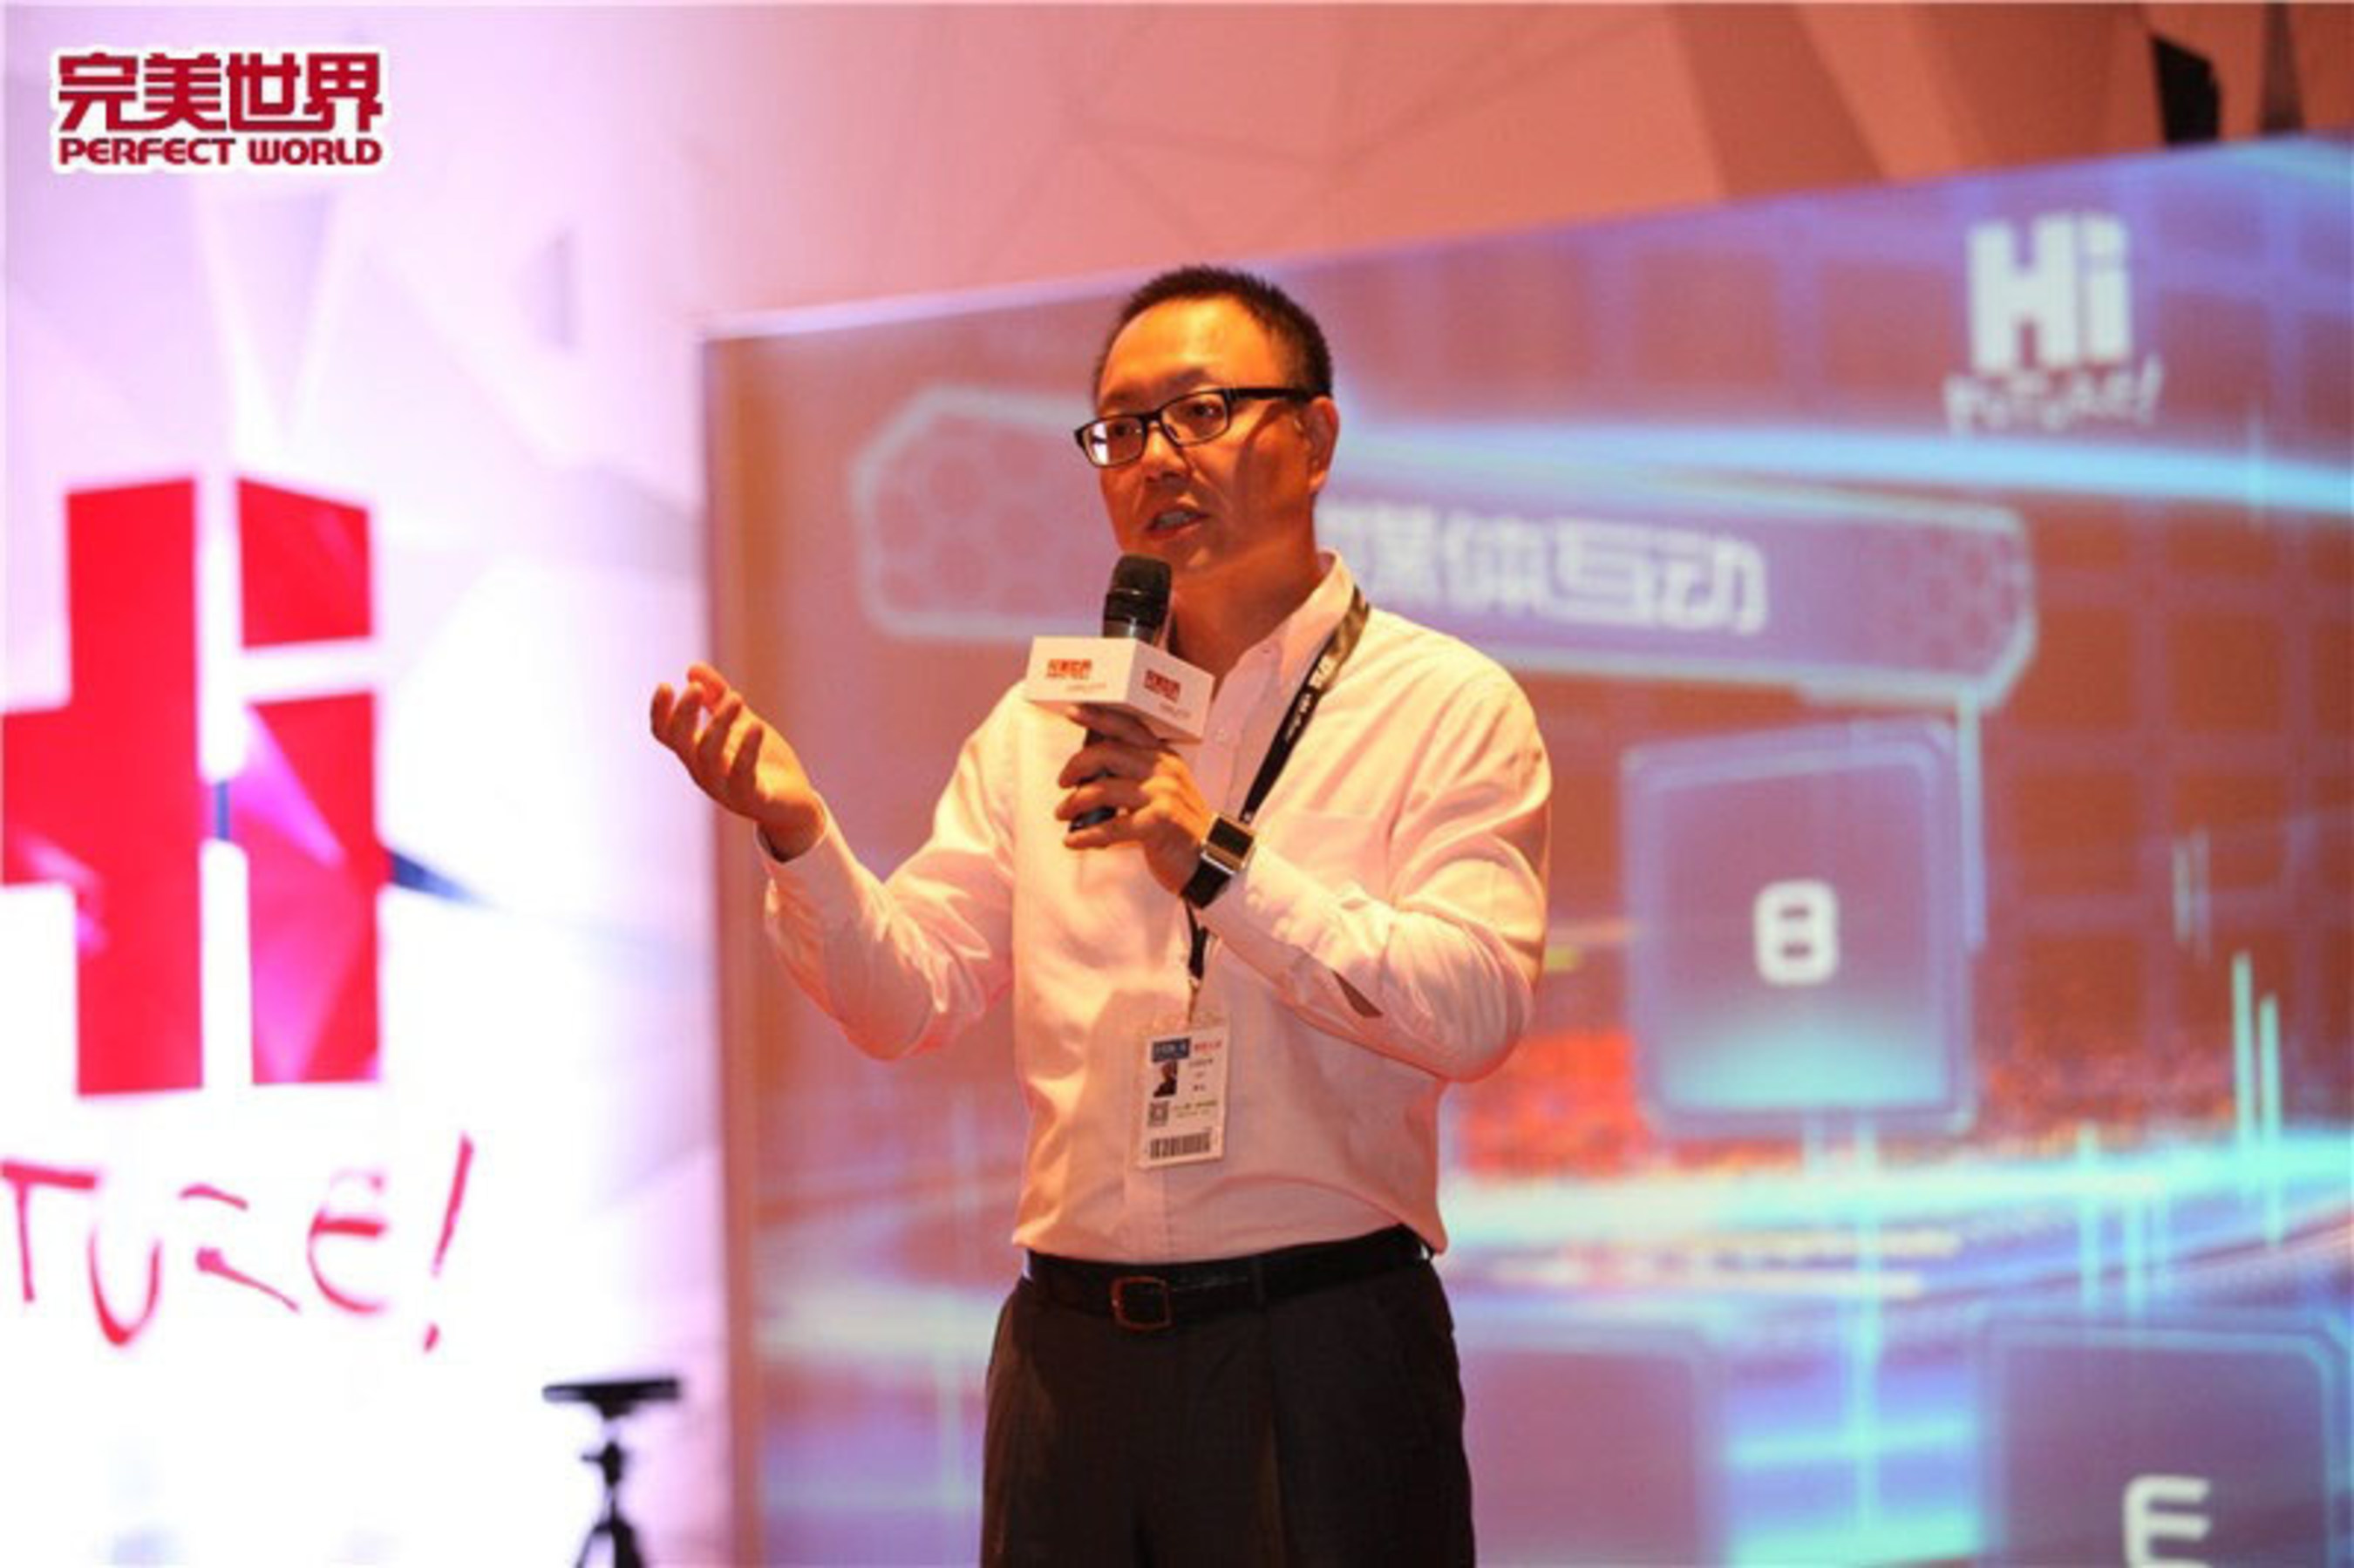 Perfect World CEO Xiao Hong says, the company's new generation Internet technology has achieved initial results (PRNewsFoto/Beijing Perfect World Network...)